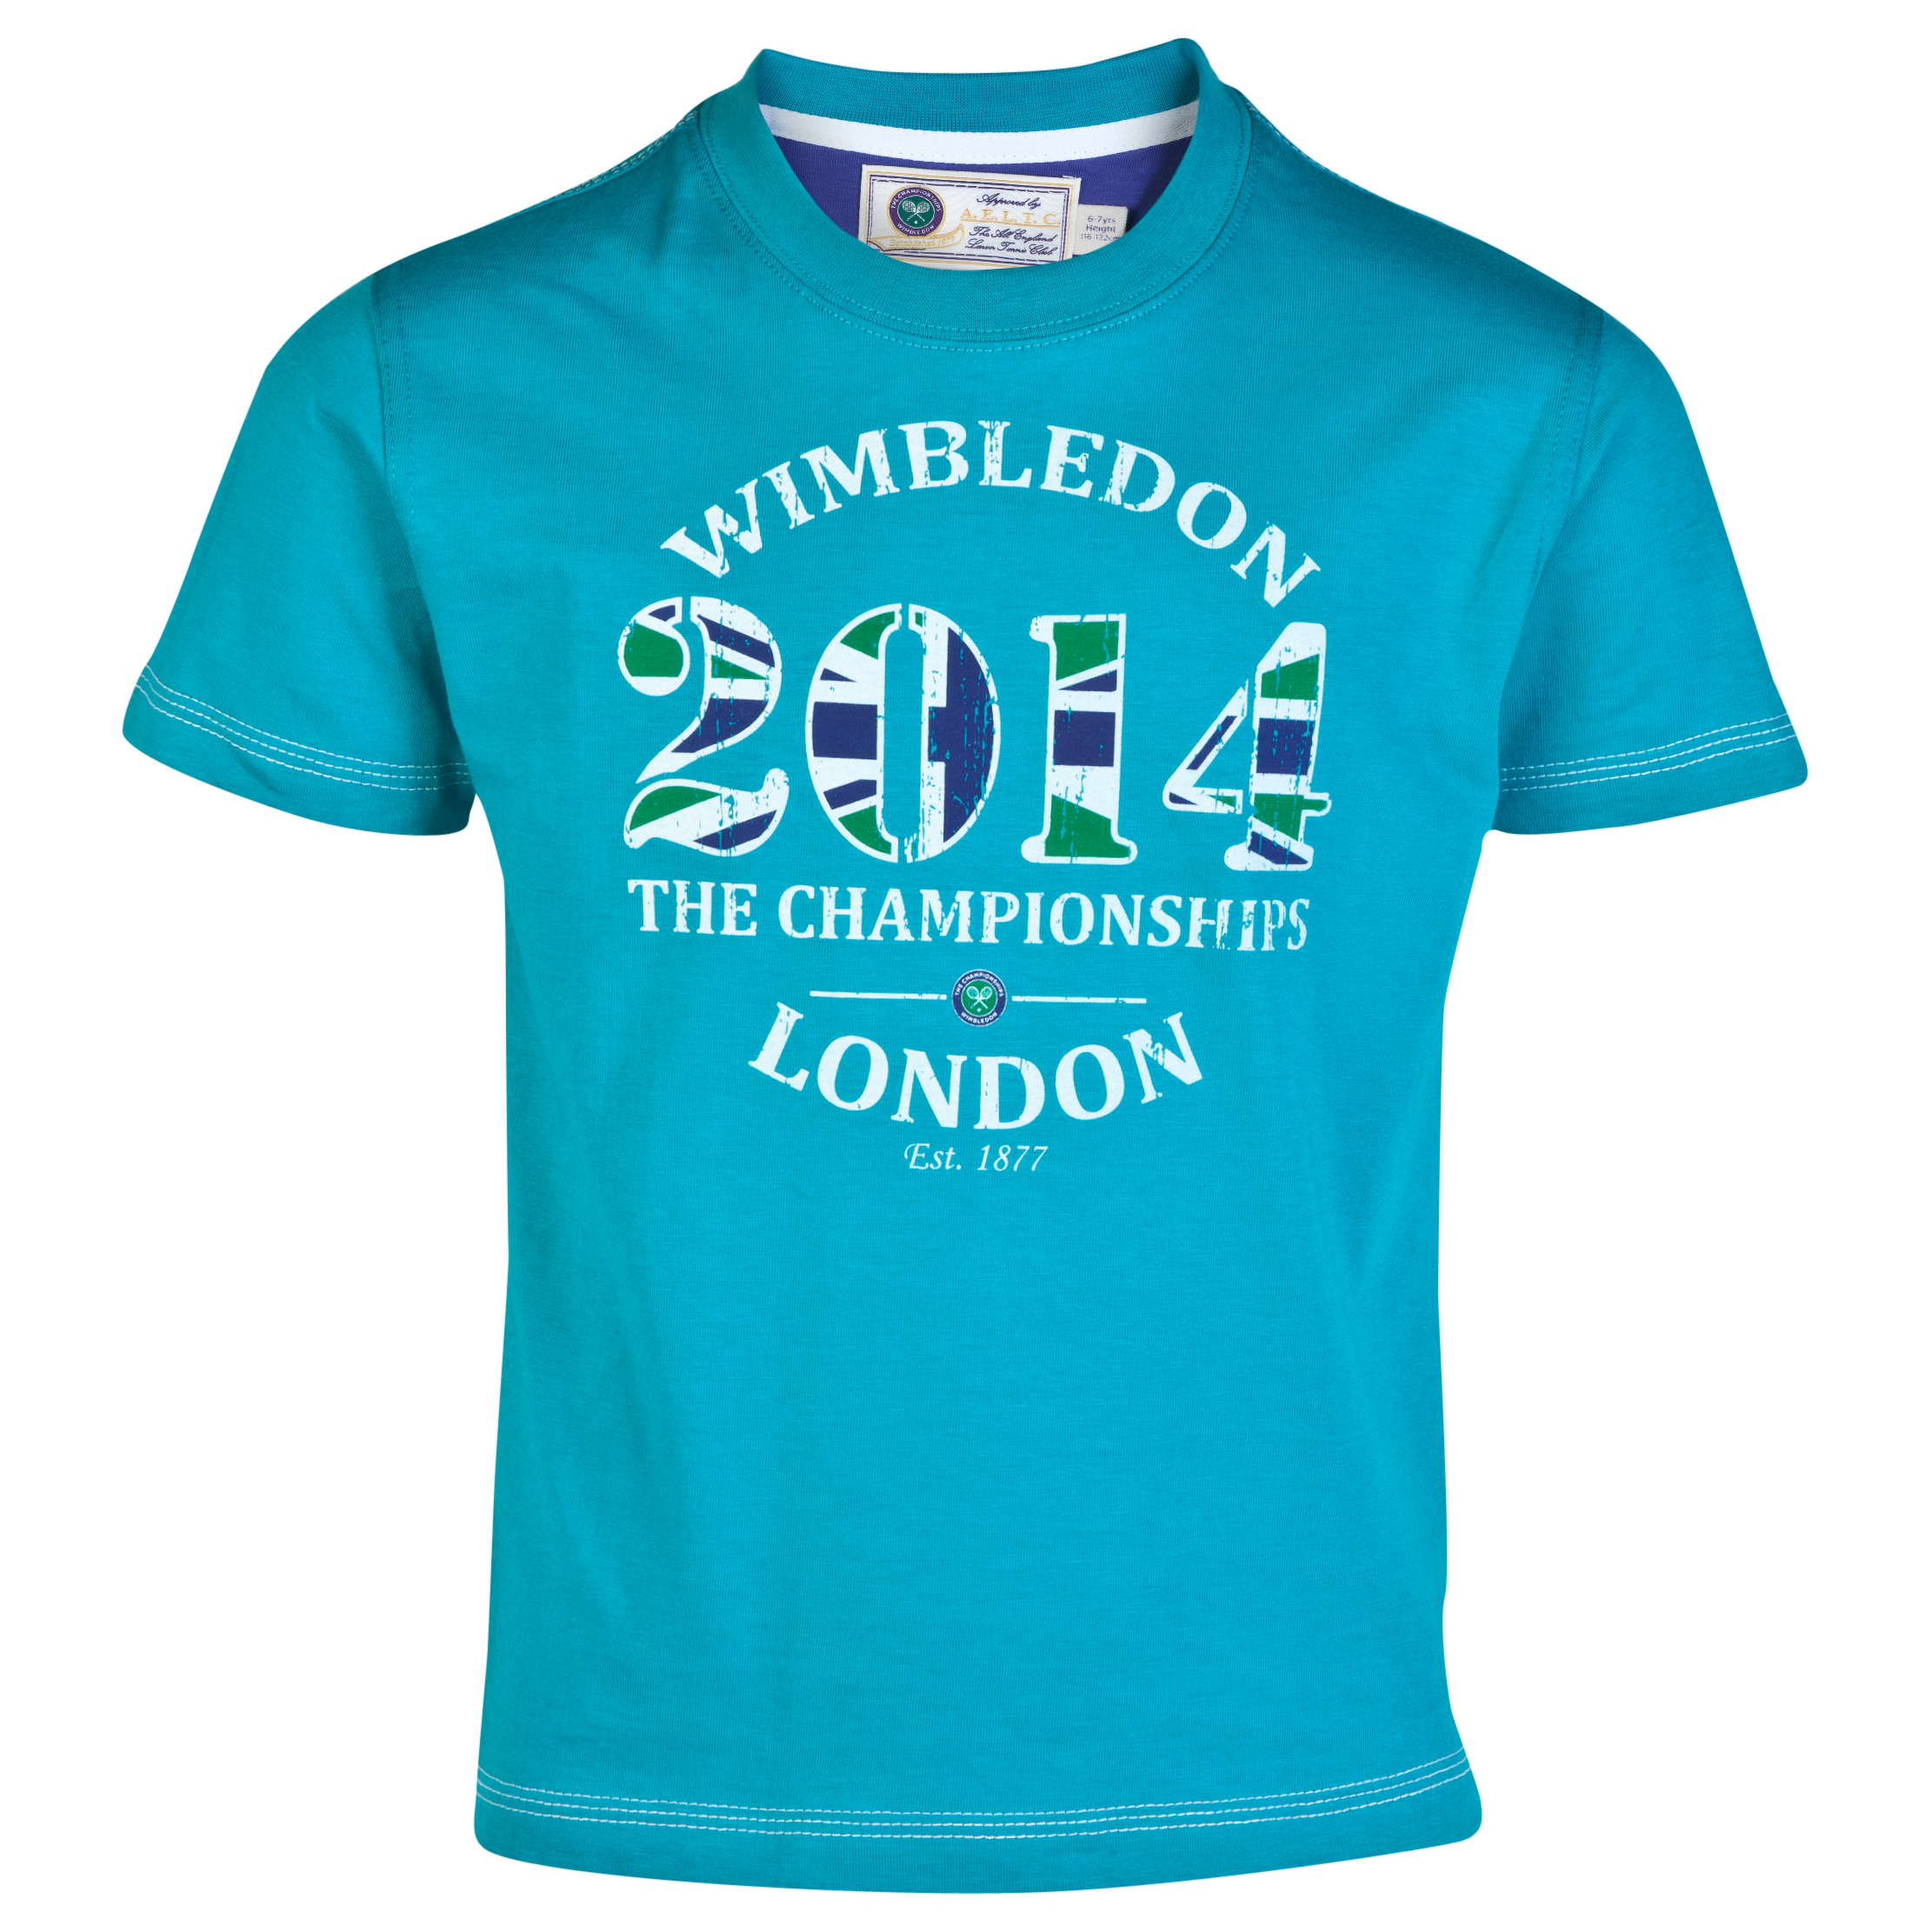 Wimbledon 2014 Print T-Shirt - Boys Green